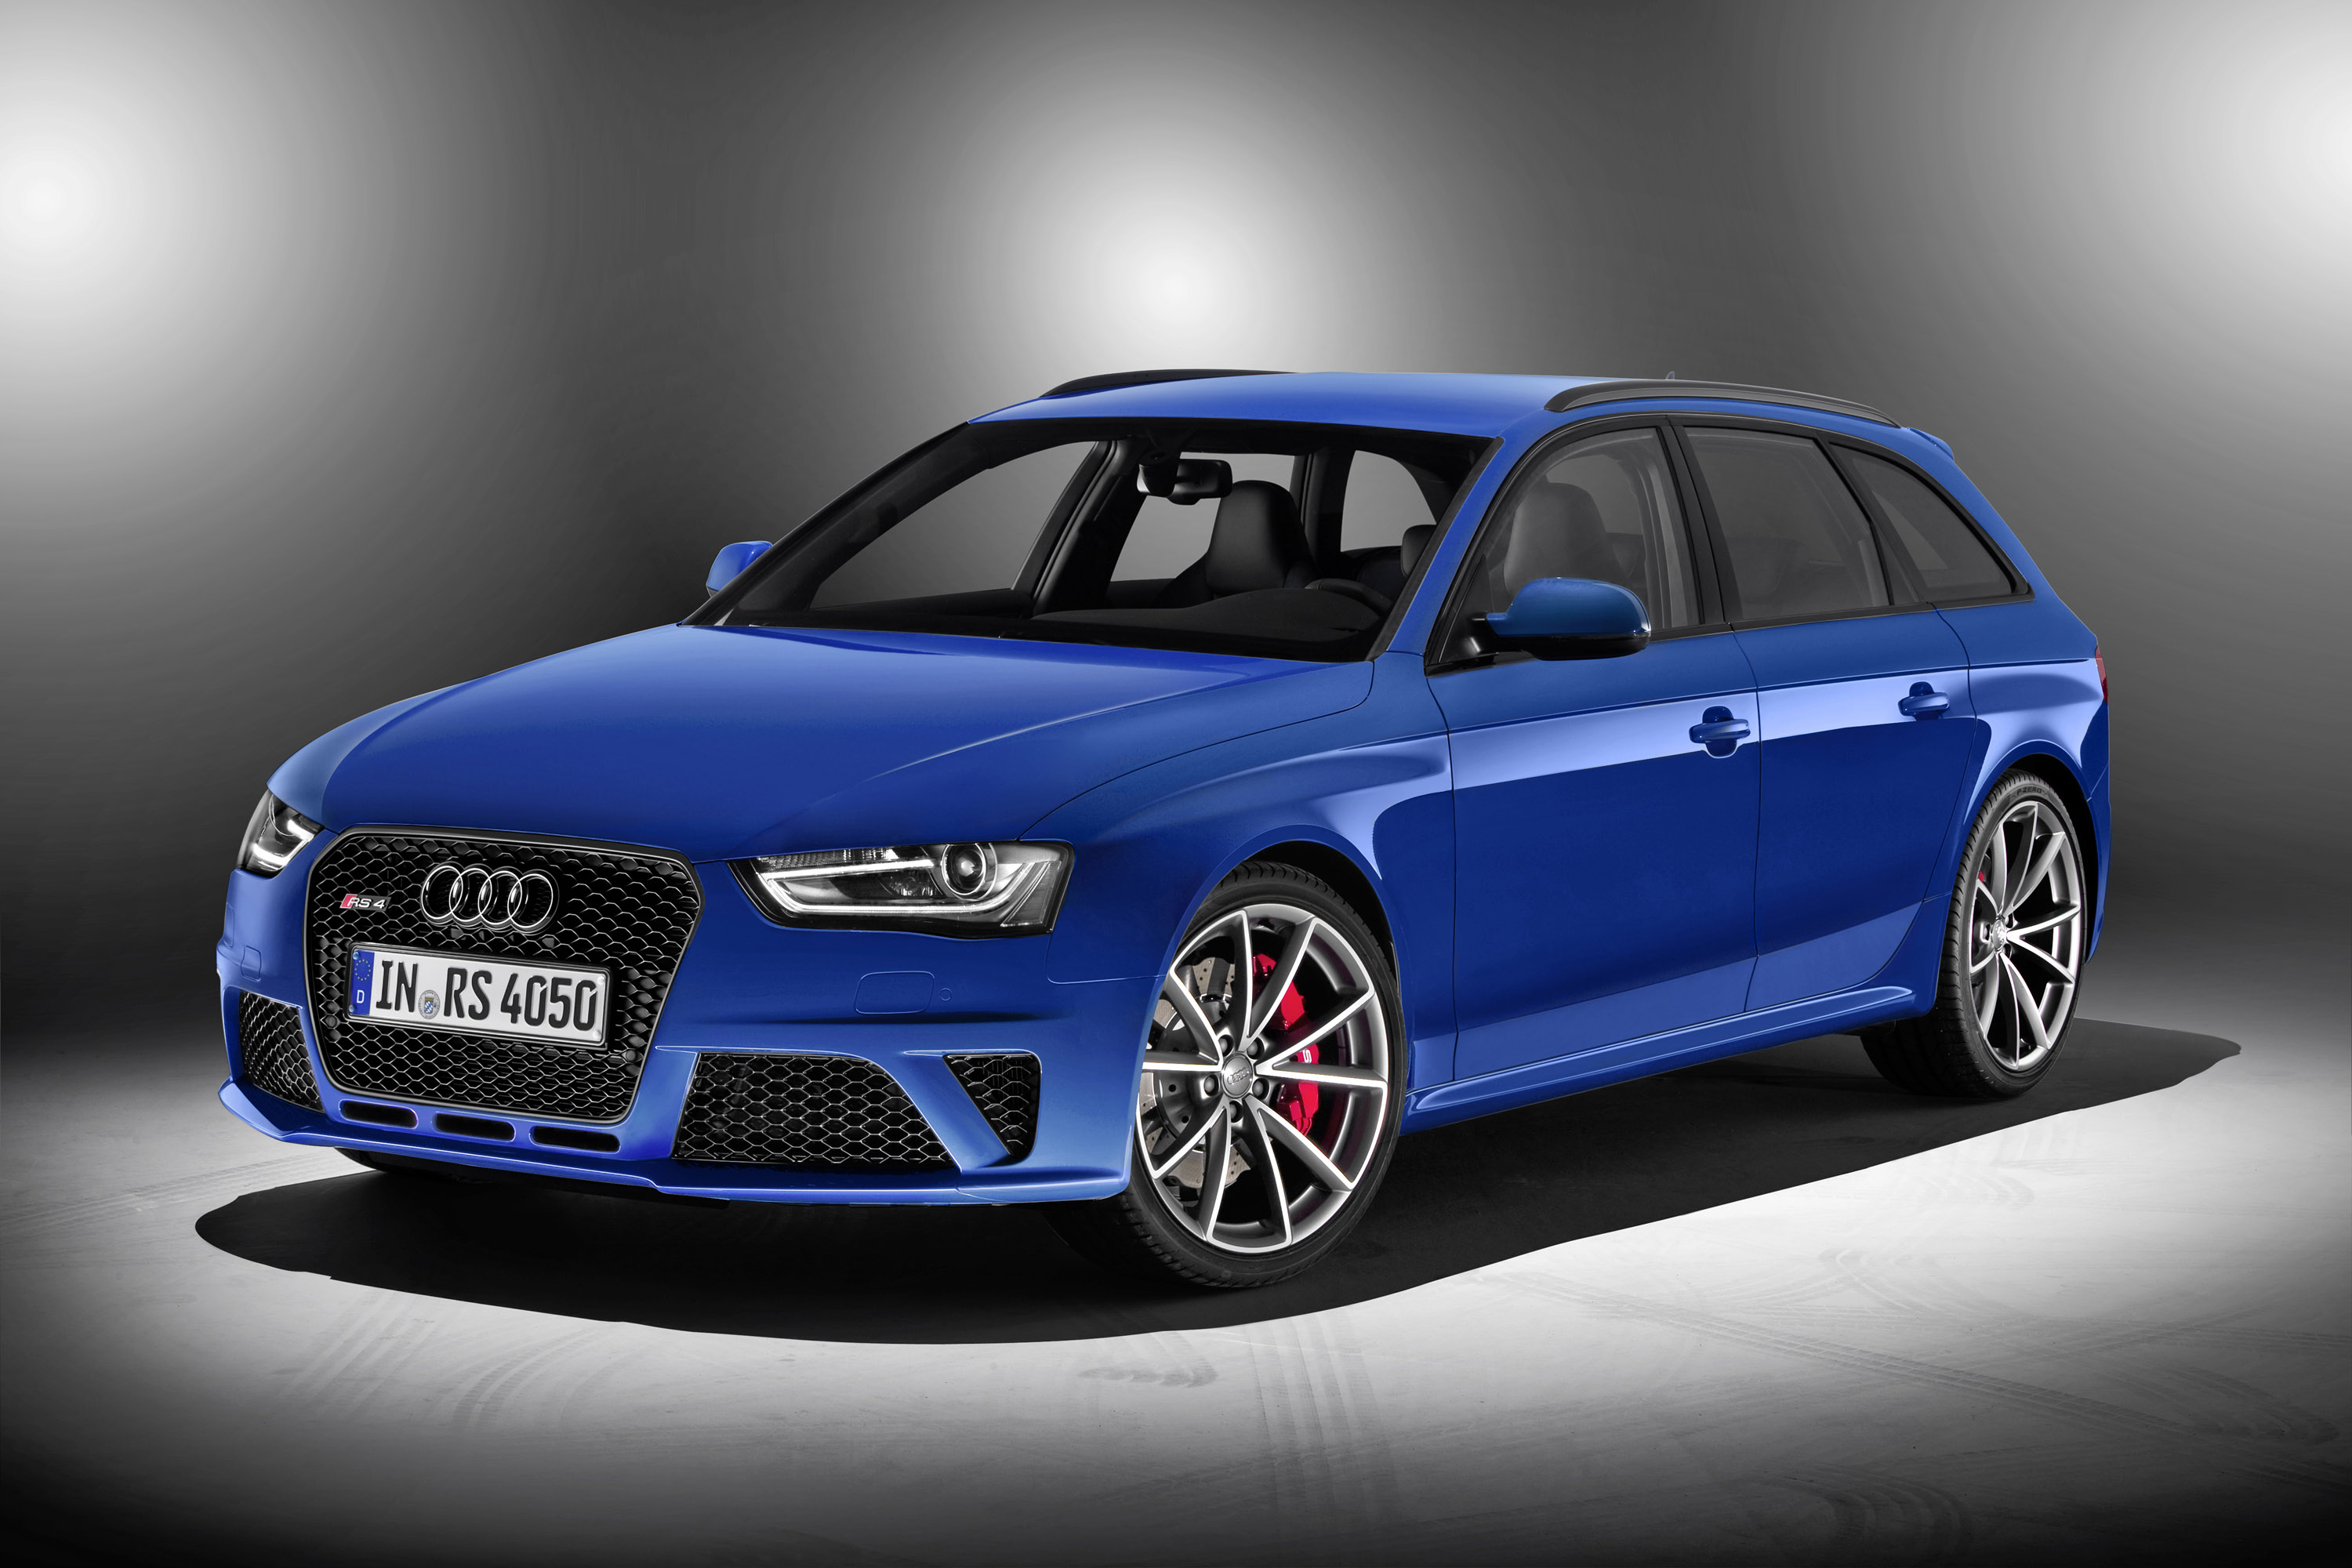 http://www.automobilesreview.com/gallery/2014-audi-rs4-avant-nogaro/2014-audi-rs4-avant-nogaro-01.jpg